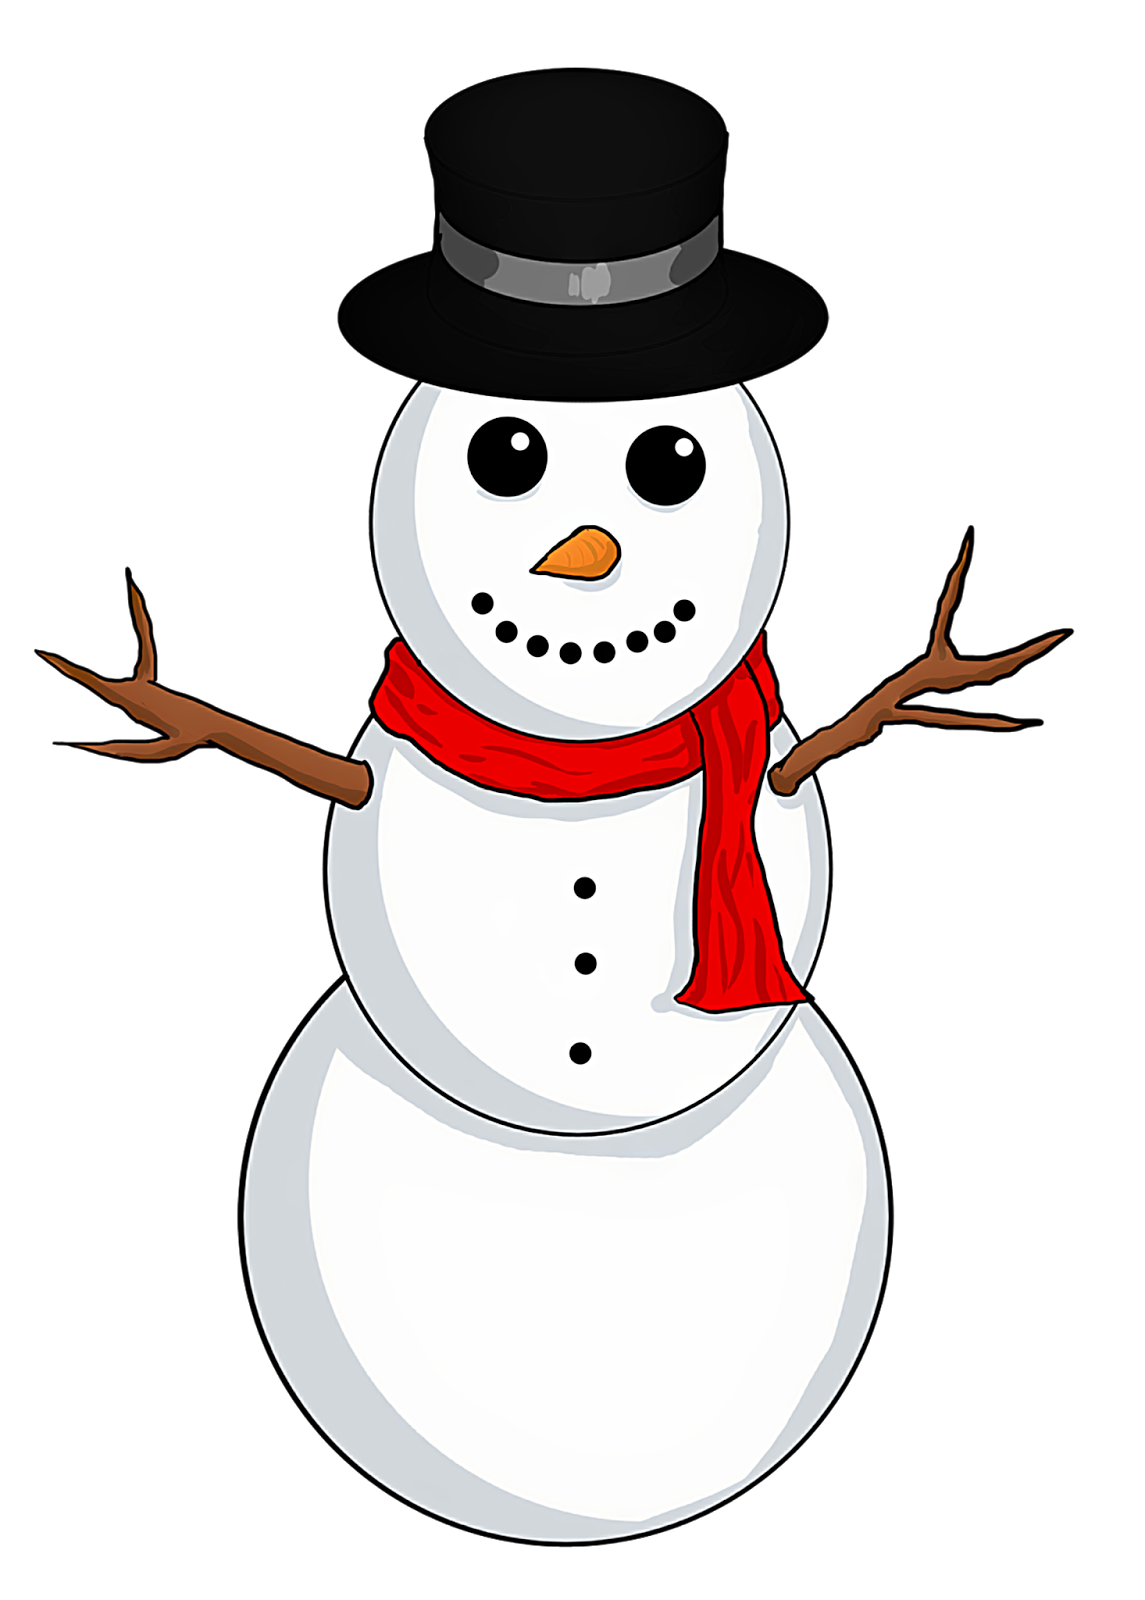 Clip Art Snow Man Clip Art snowman transparent background clipart kid free christmas clip arts images in high resolution for hd wallpapers